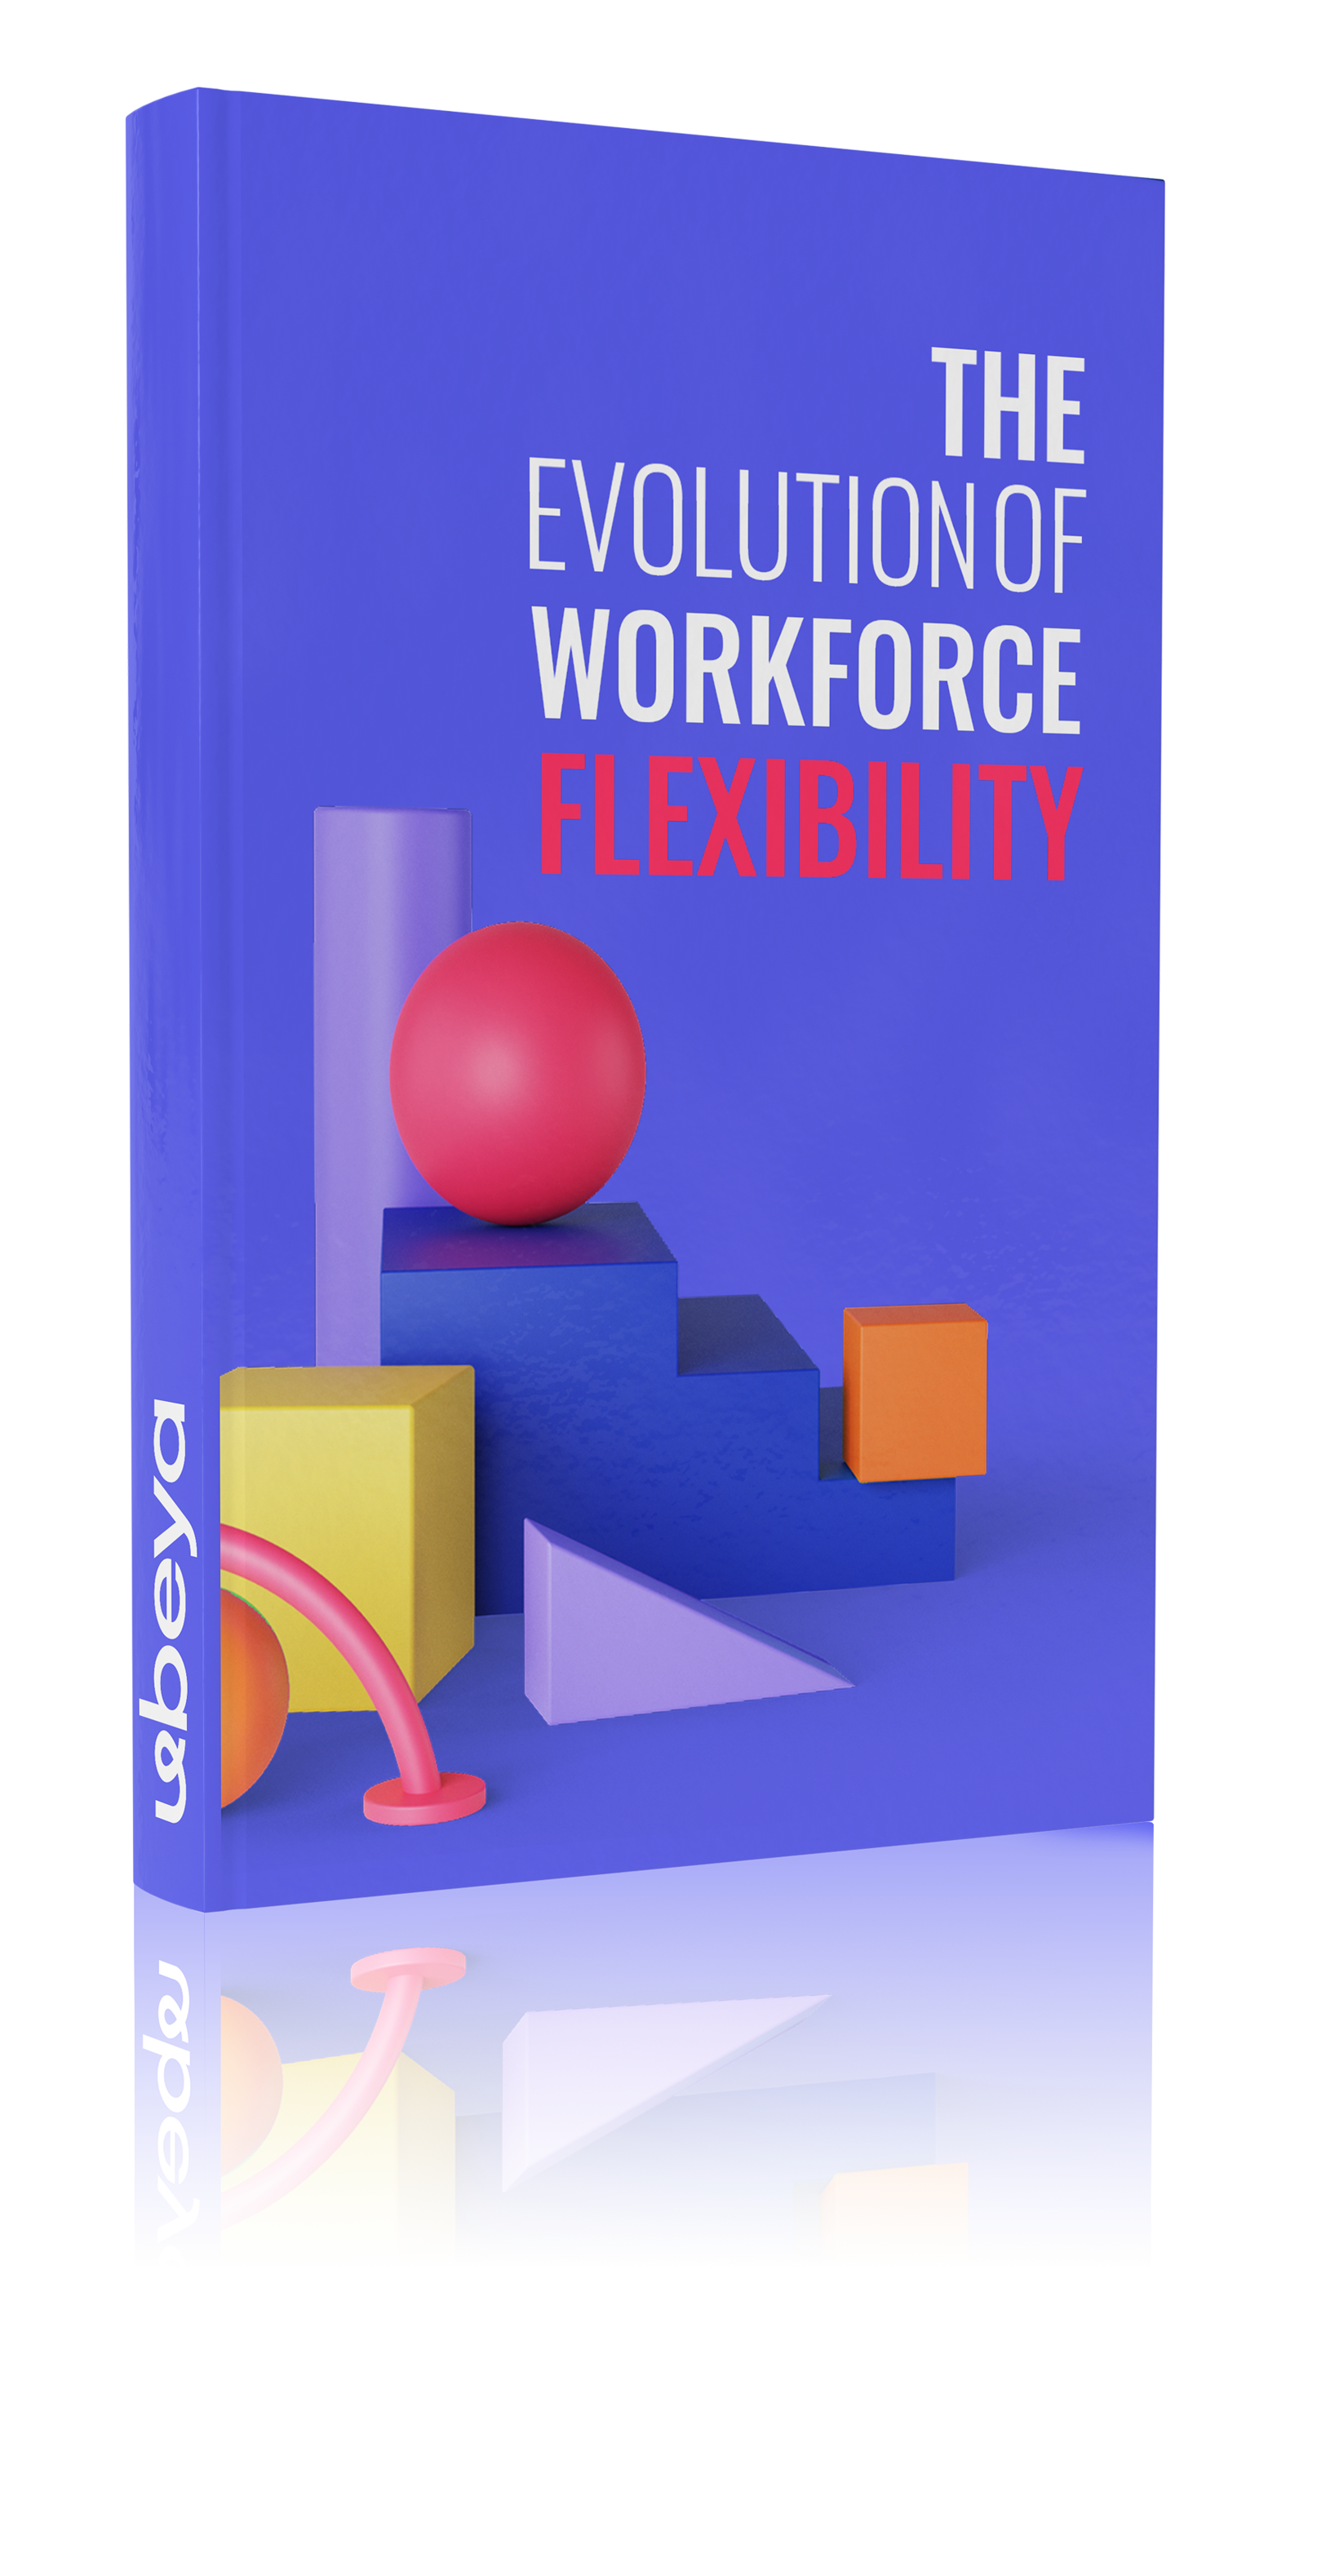 The Evolution of Workforce Flexibility Book Cover Image